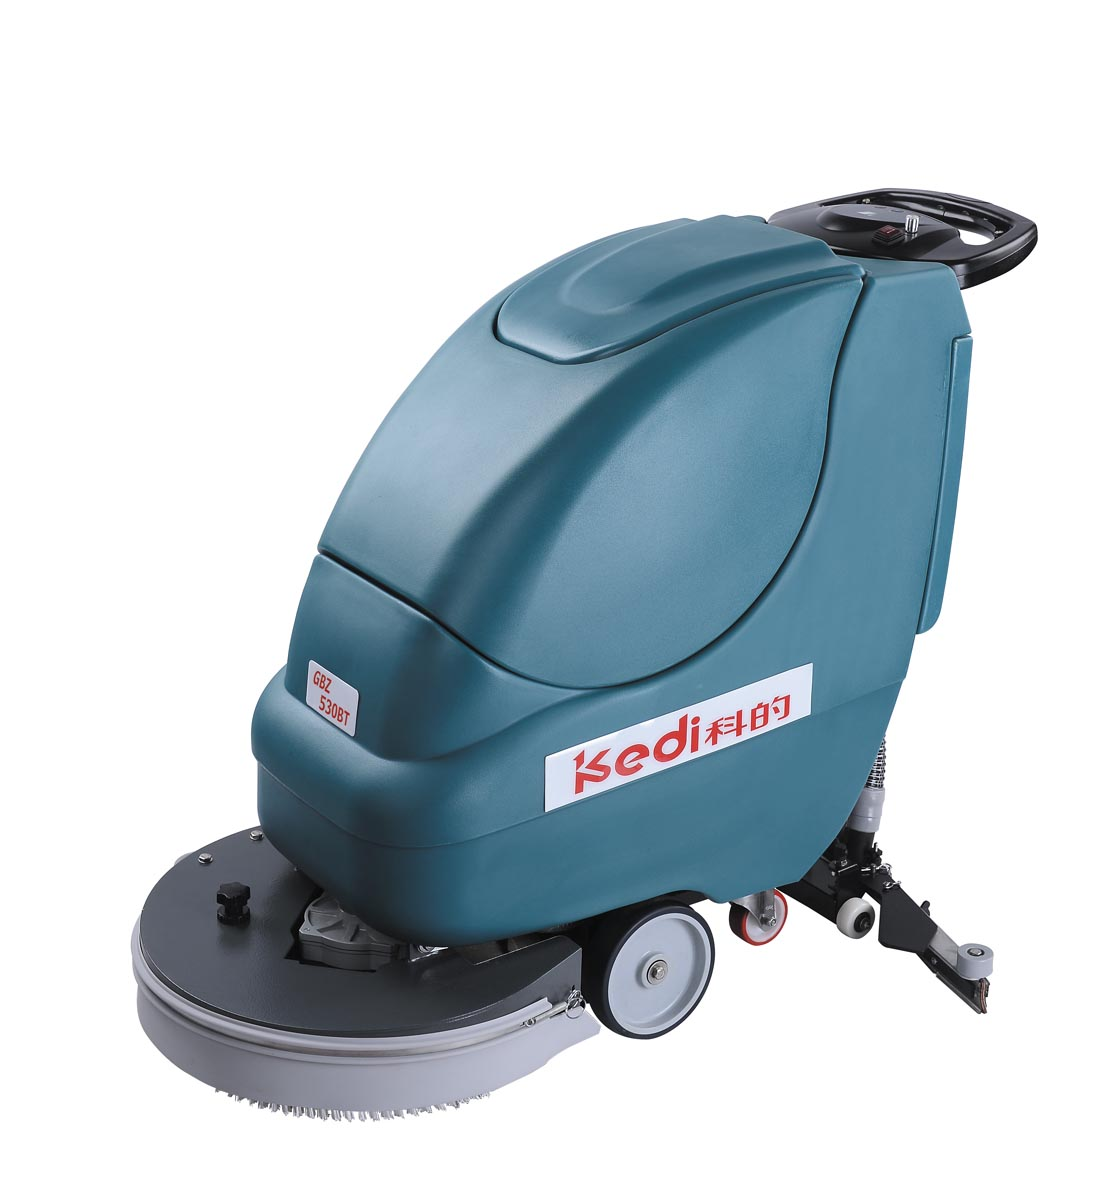 20B Floor Scrubber Machine